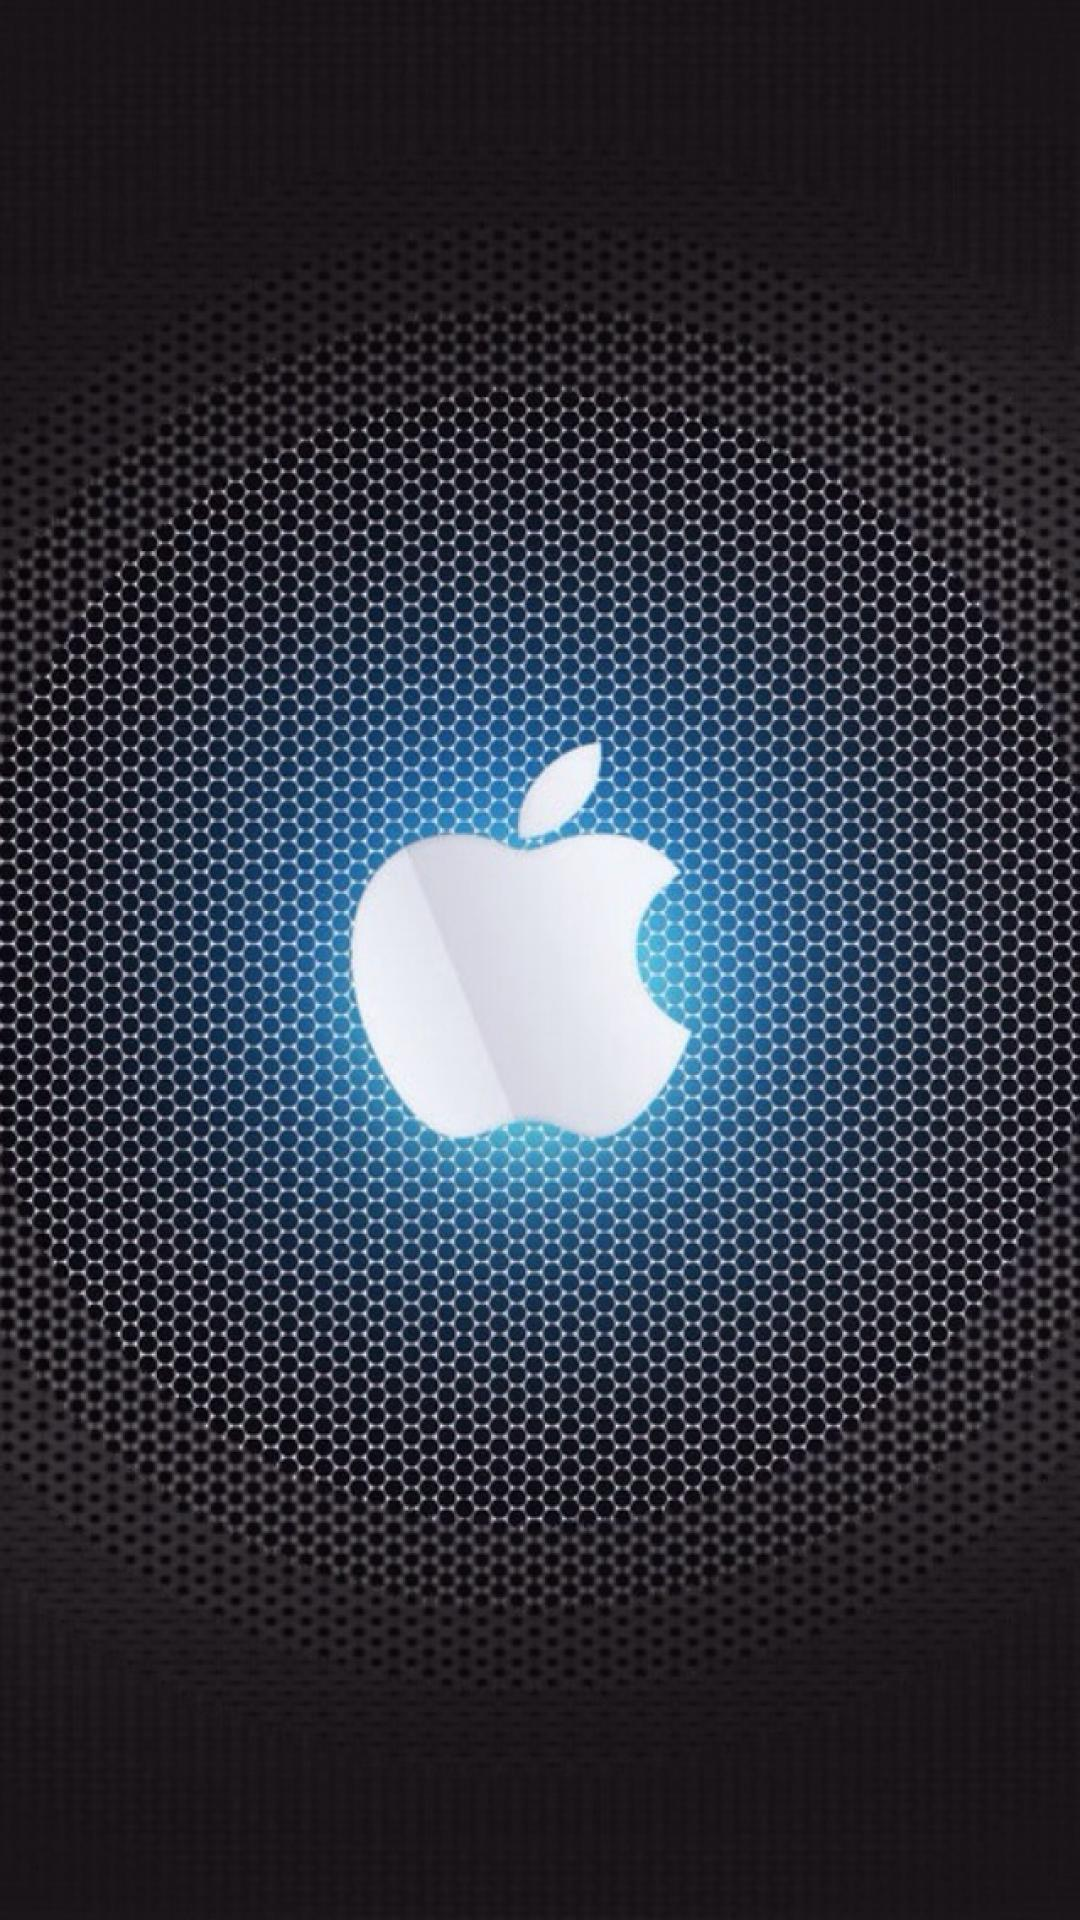 Apple Iphone Wallpaper HD 1080x1920 2